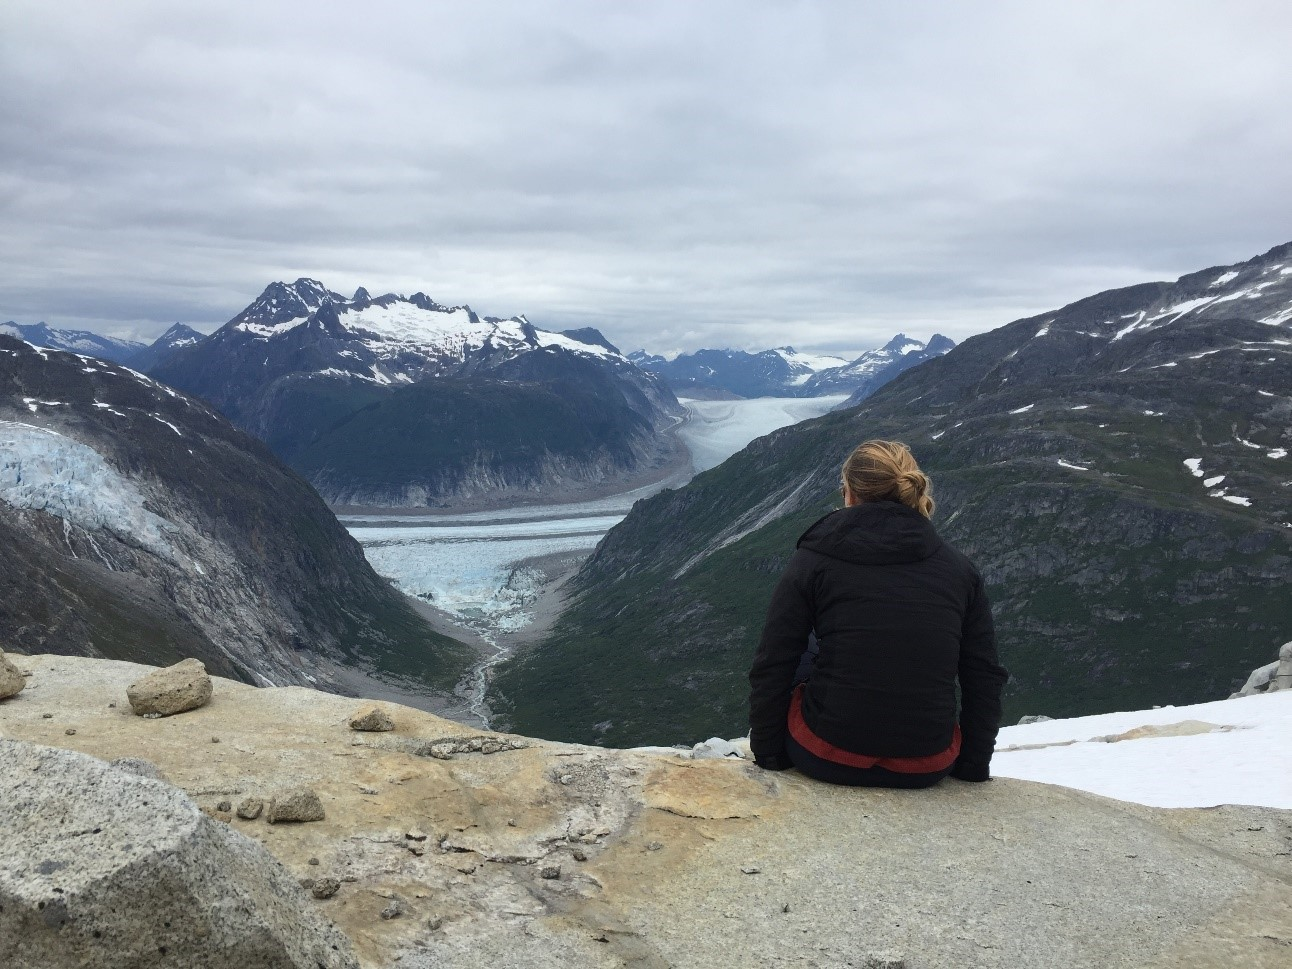 Looking out at the view on the first day. Avalanche Canyon, in the middle ground, is vegetated. In the background the Bucher and Gilkey glaciers flow through the Gilkey Trench and out the left side of the frame. Photo credit: Kara Vogler.